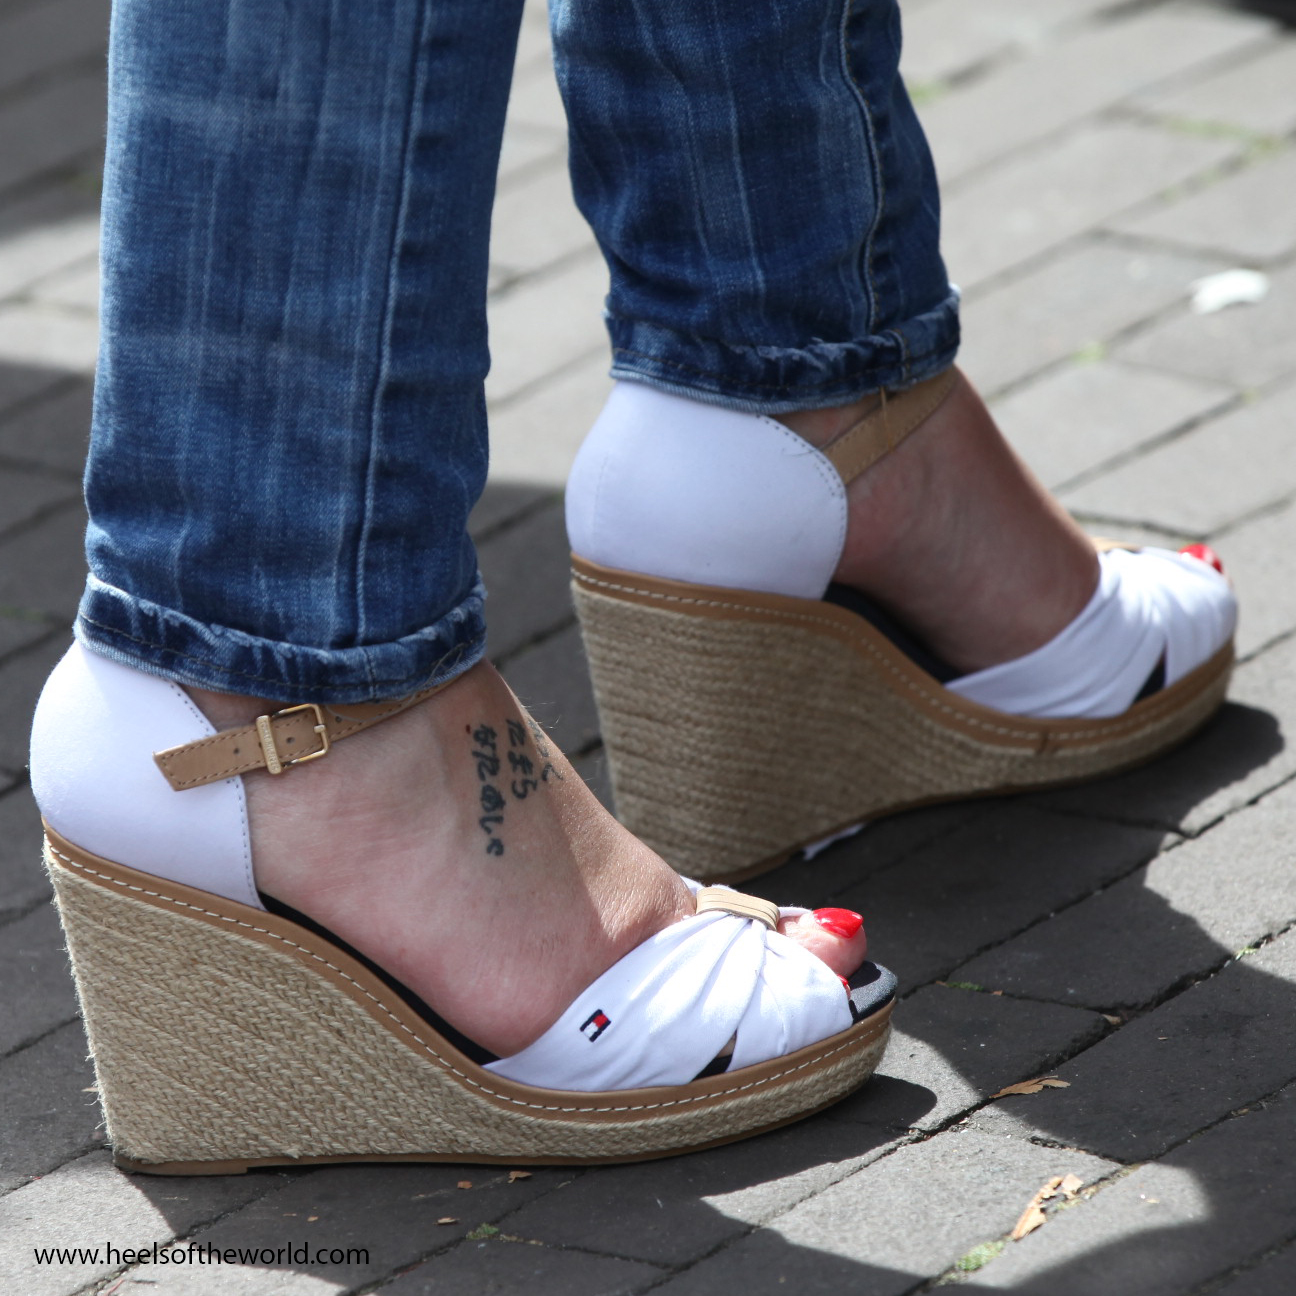 Dutch heels. White wedges and red nails at Jazz event in Hillegersberg (Rotterdam/NL)